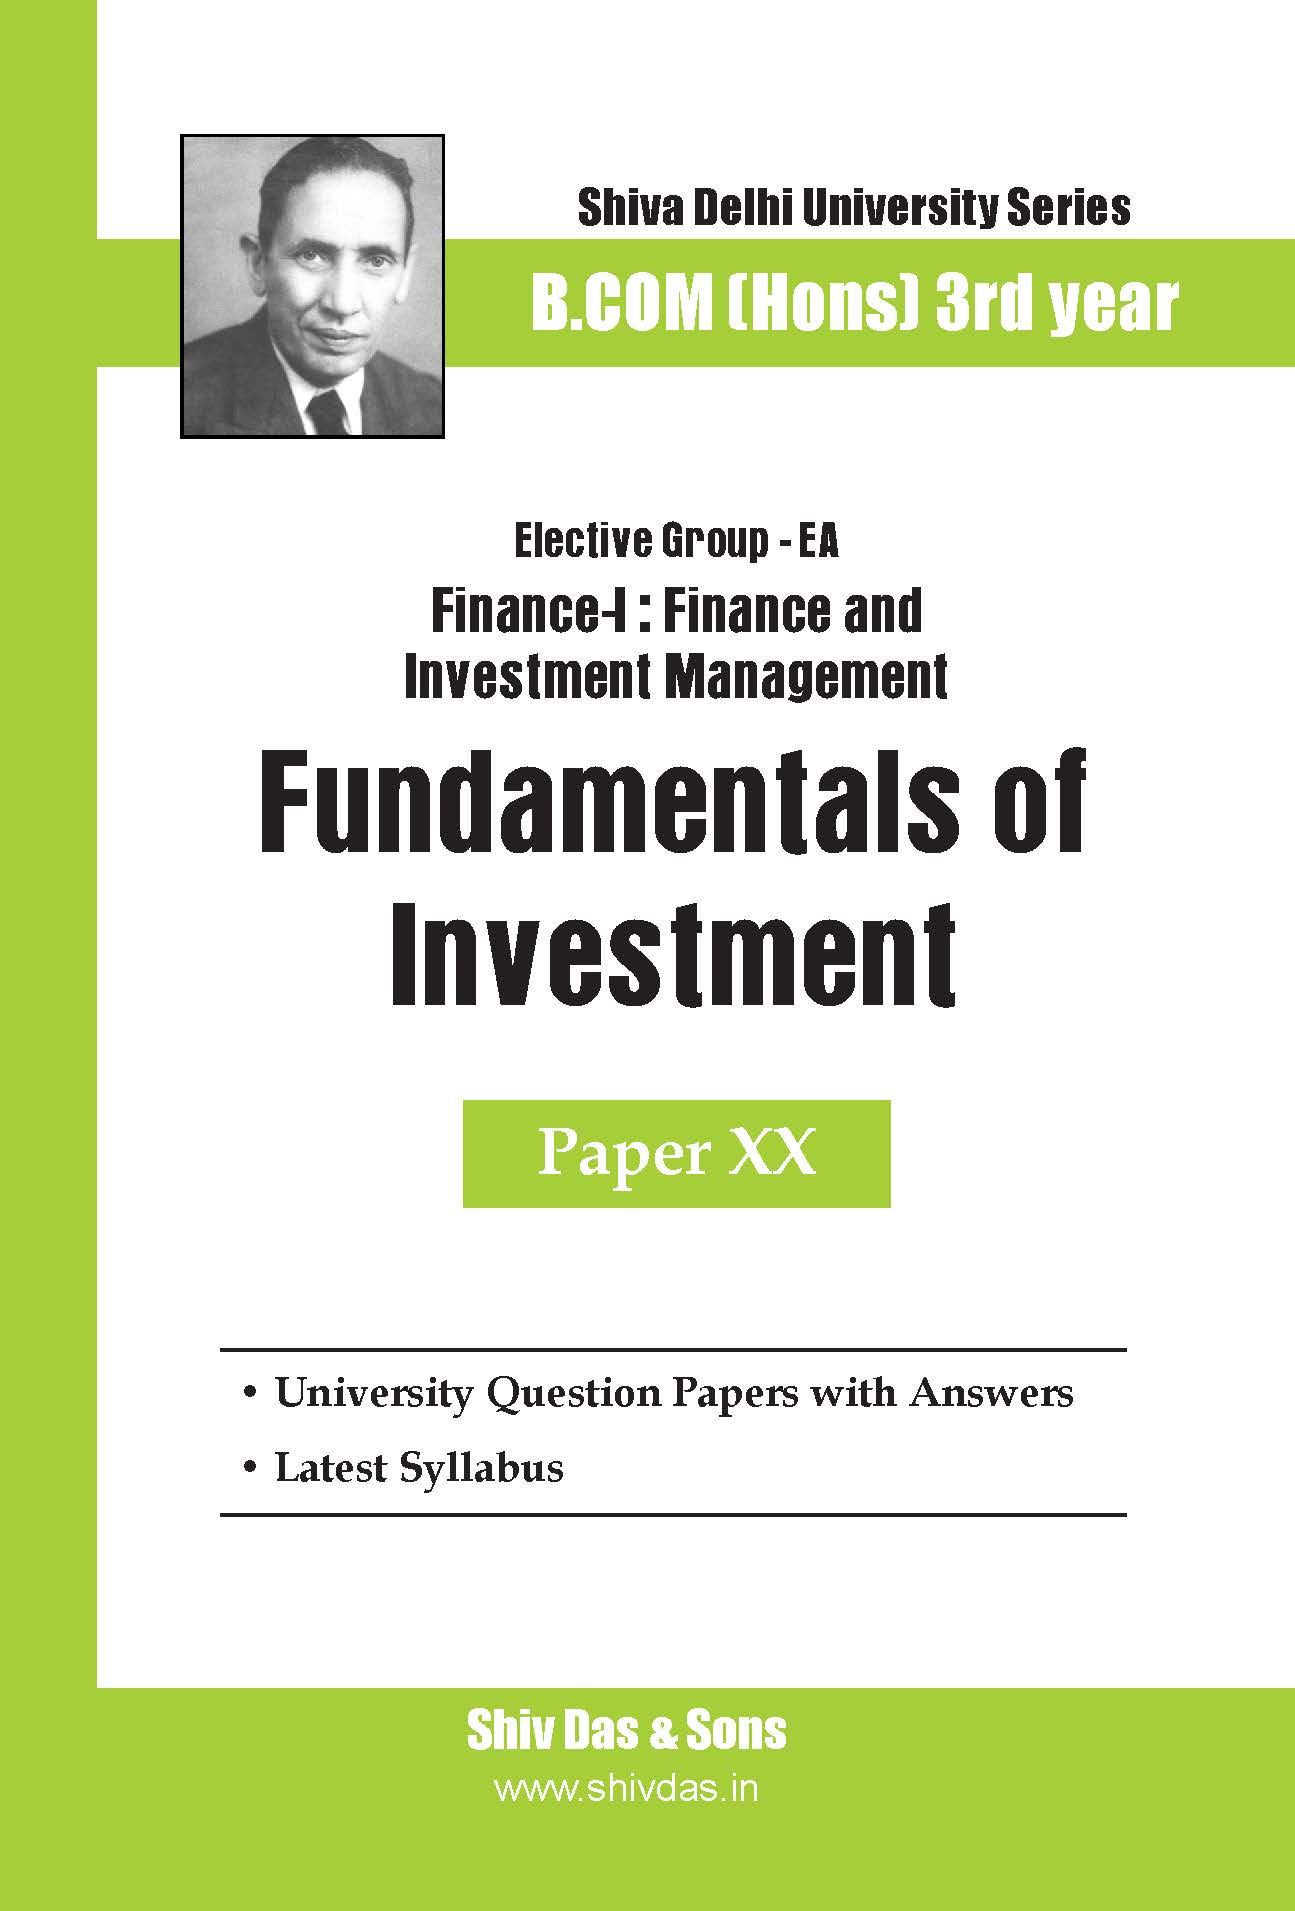 B.Com Hons-SOL/External-3rd Year-Fundamentals of Investment-Shiv Das-Delhi University Series